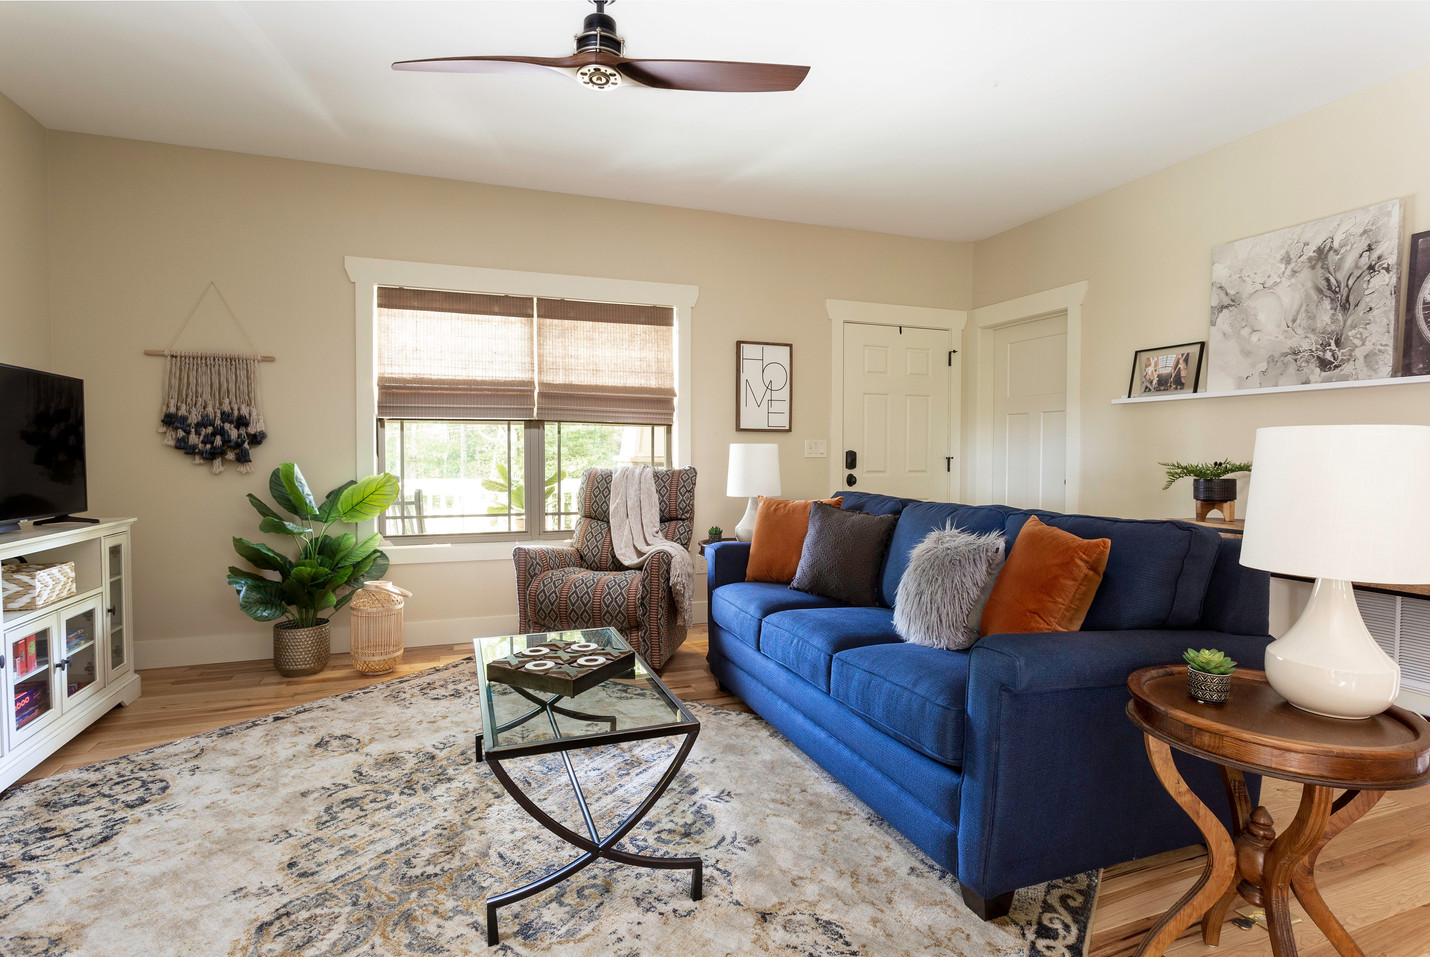 A vacation rental in Asheville with a large TV and fireplace